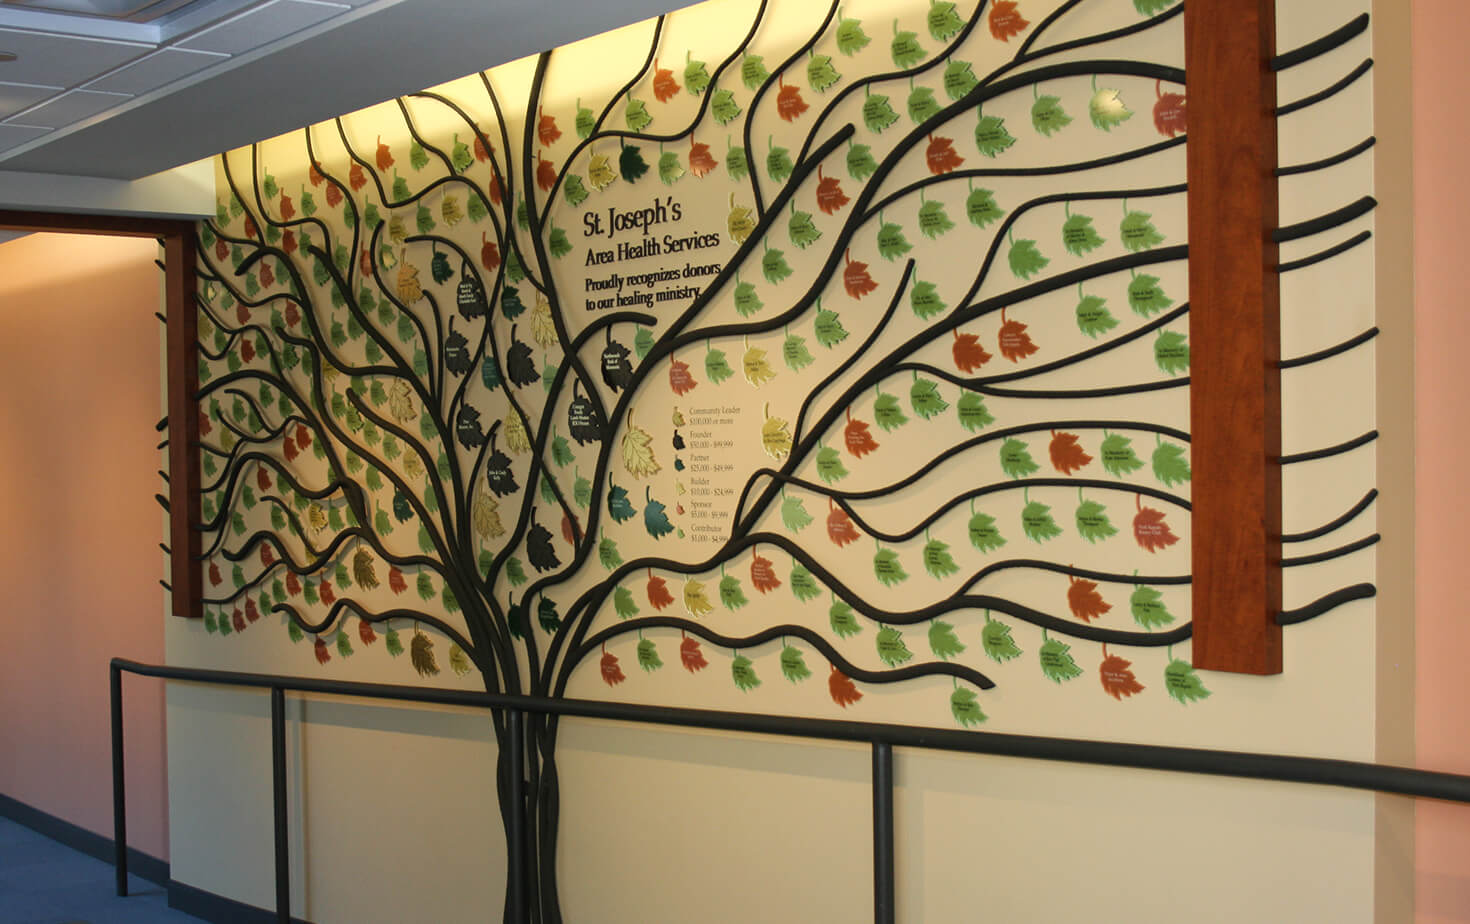 St Joseph's Area Health Services Donar Display wall Tree with Leaves